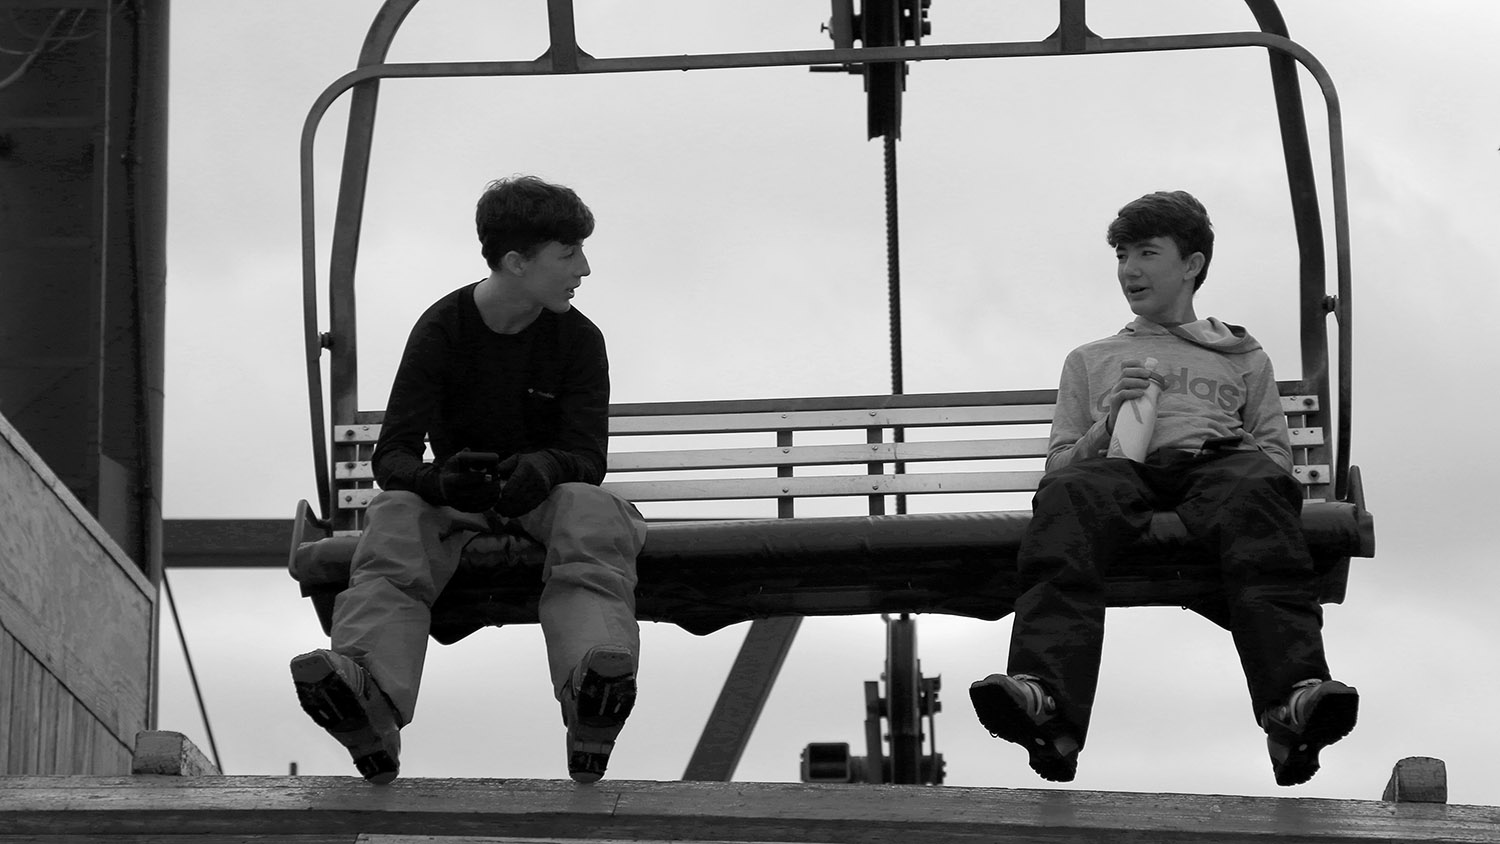 An image of Ty and Dylan on a chair of the Timberline Quad Chairlift during a ski tour at Bolton Valley Resort in Vermont.